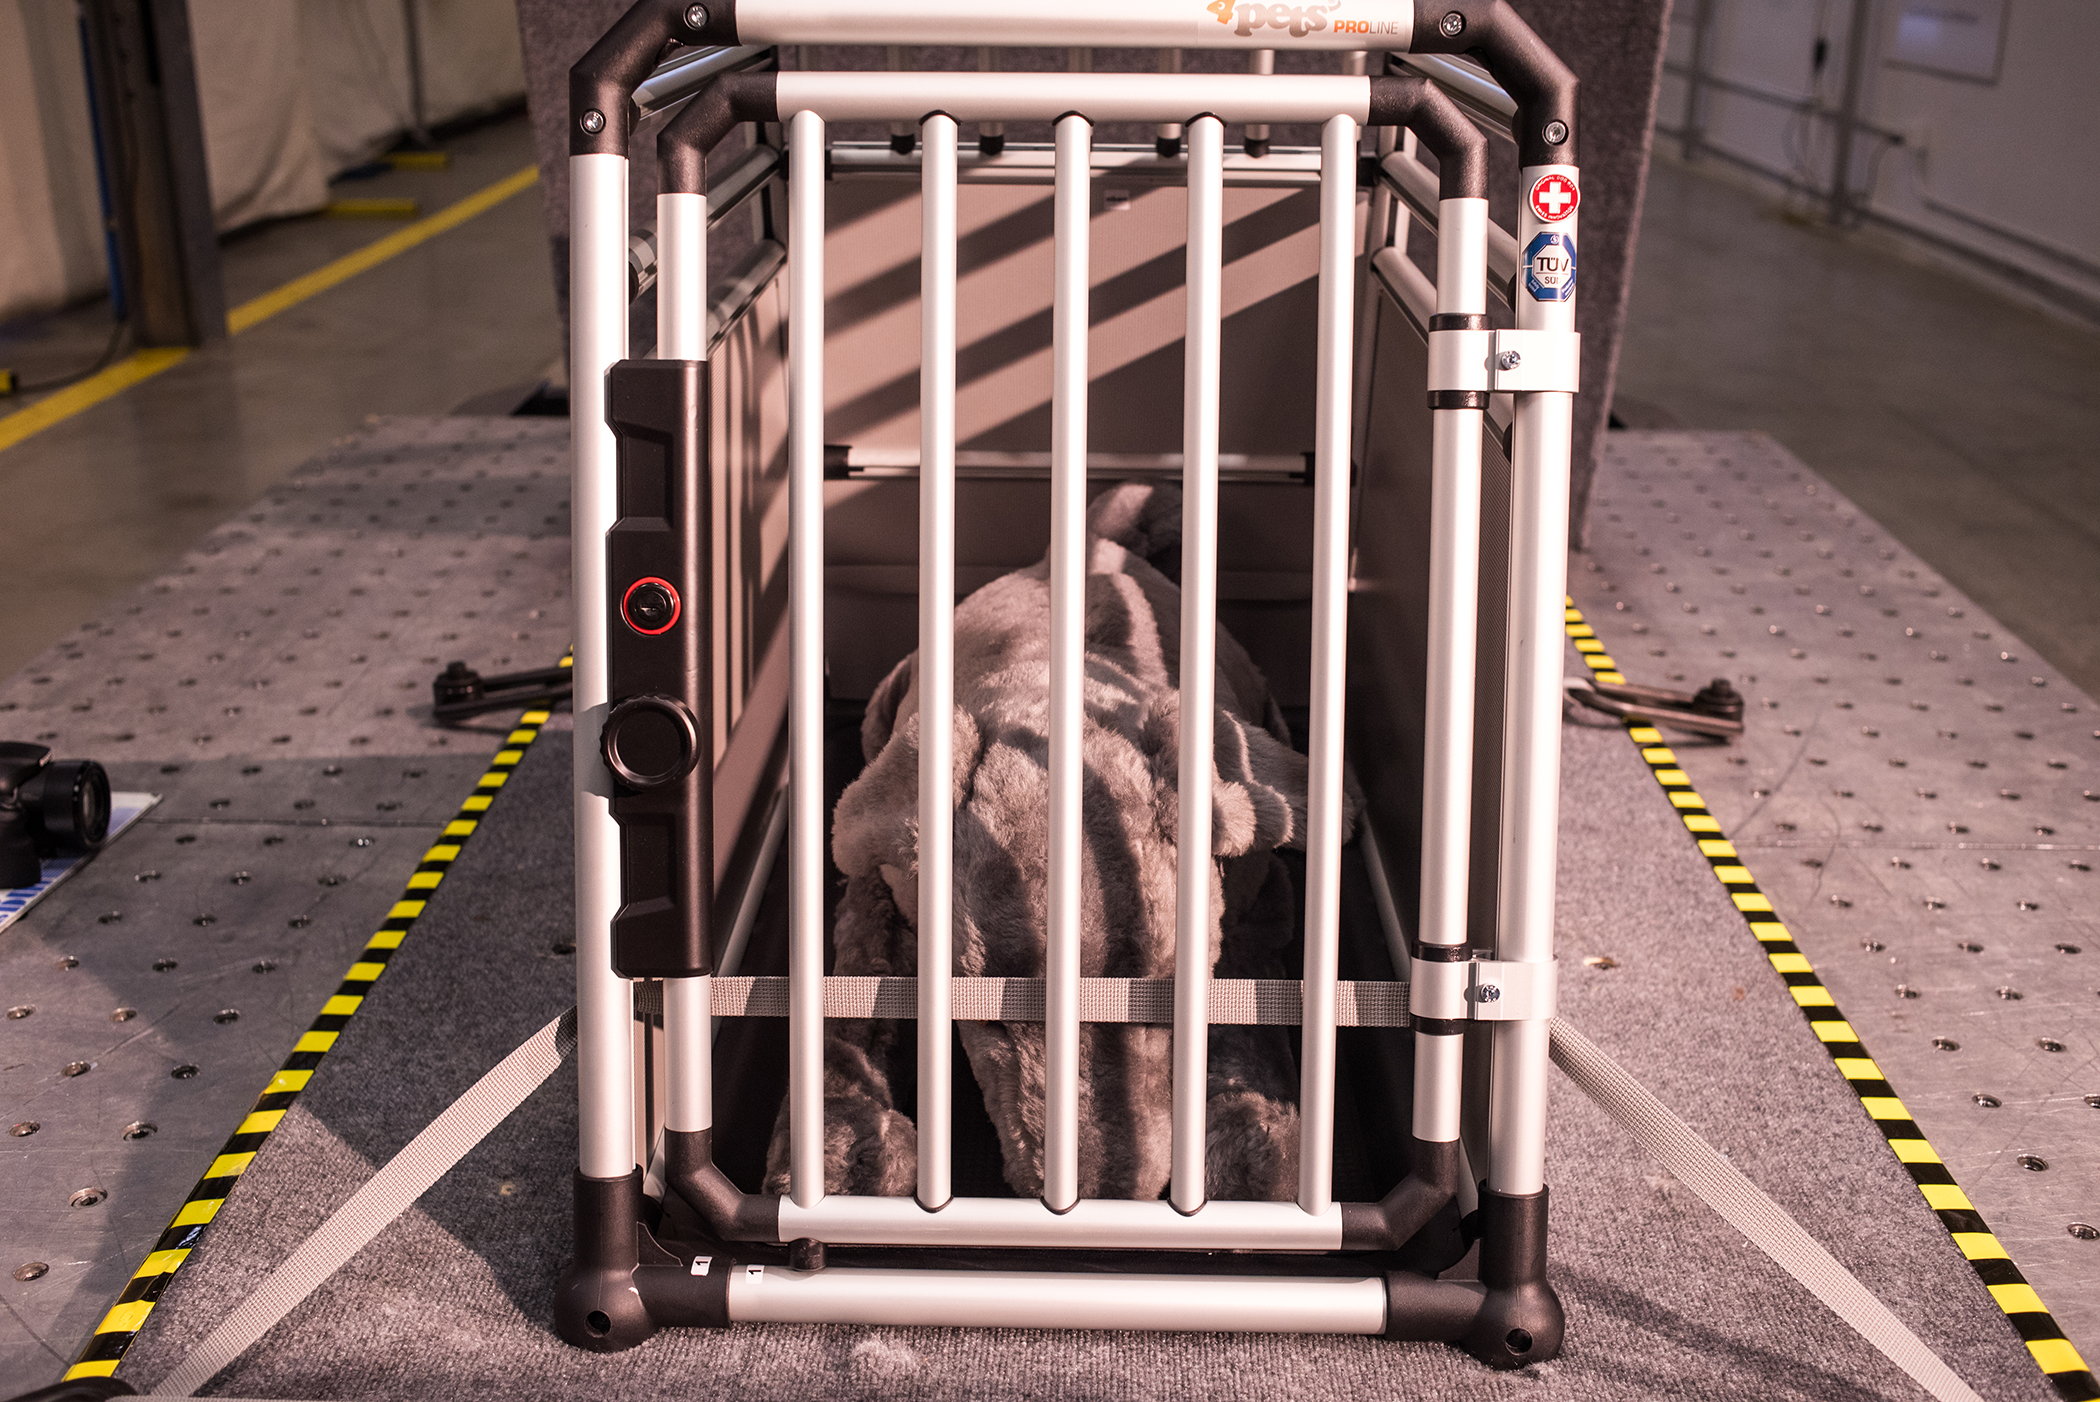 2015 Crate Crashworthiness Study